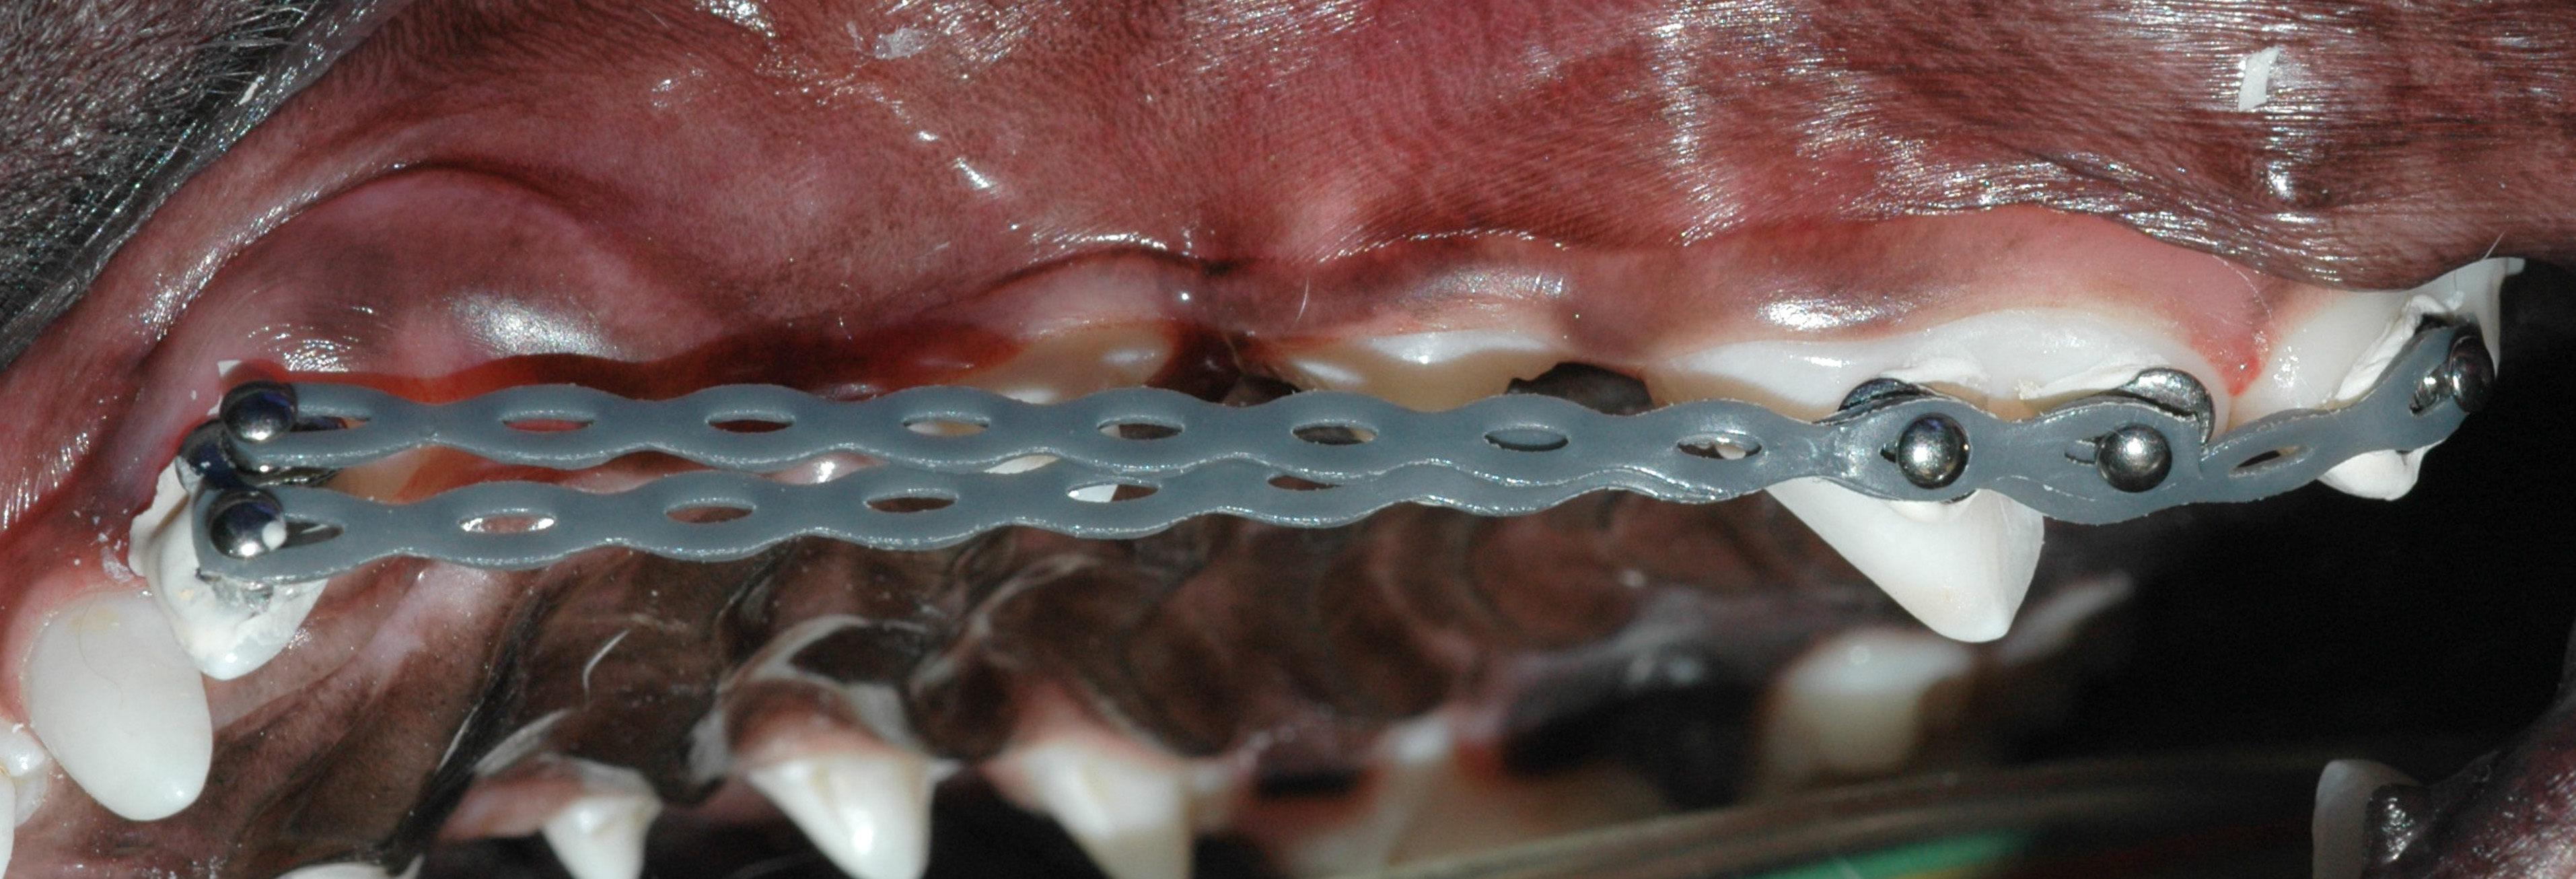 Orthodontic buttons and elastics used to move the malpositioned canine caudally